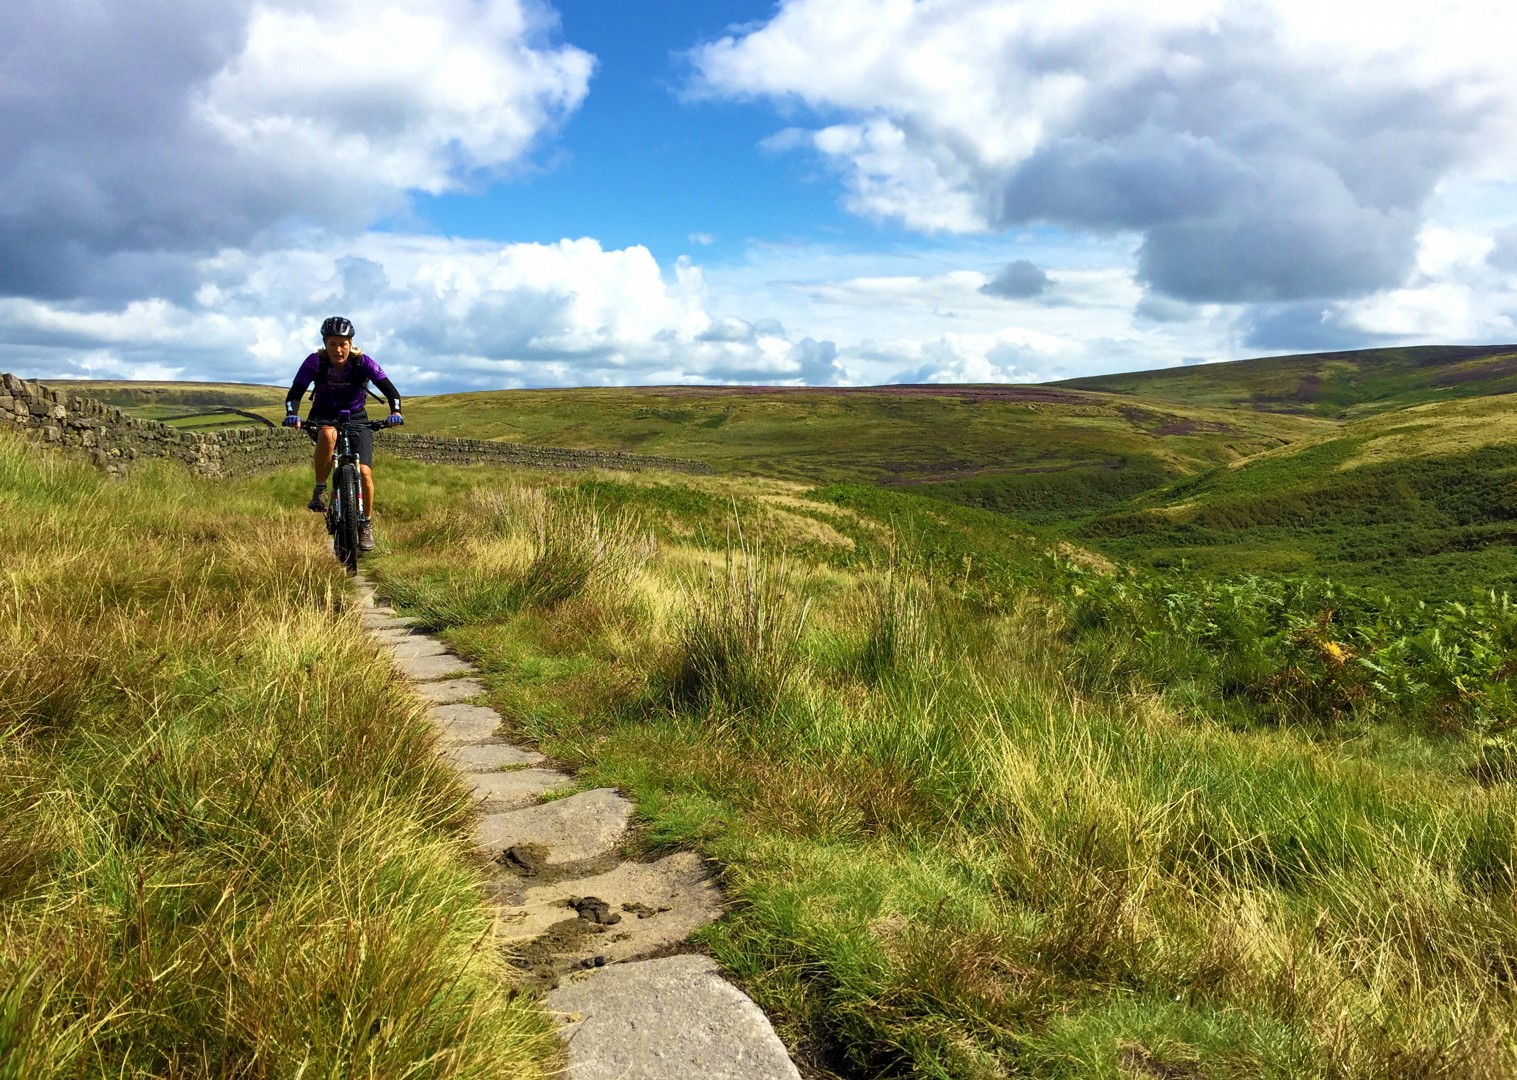 ingleborough-mtb-mountain-biking-pennine-bridleway-skedaddle.JPG - UK - Pennine Bridleway - Guided Mountain Bike Weekend - Mountain Biking